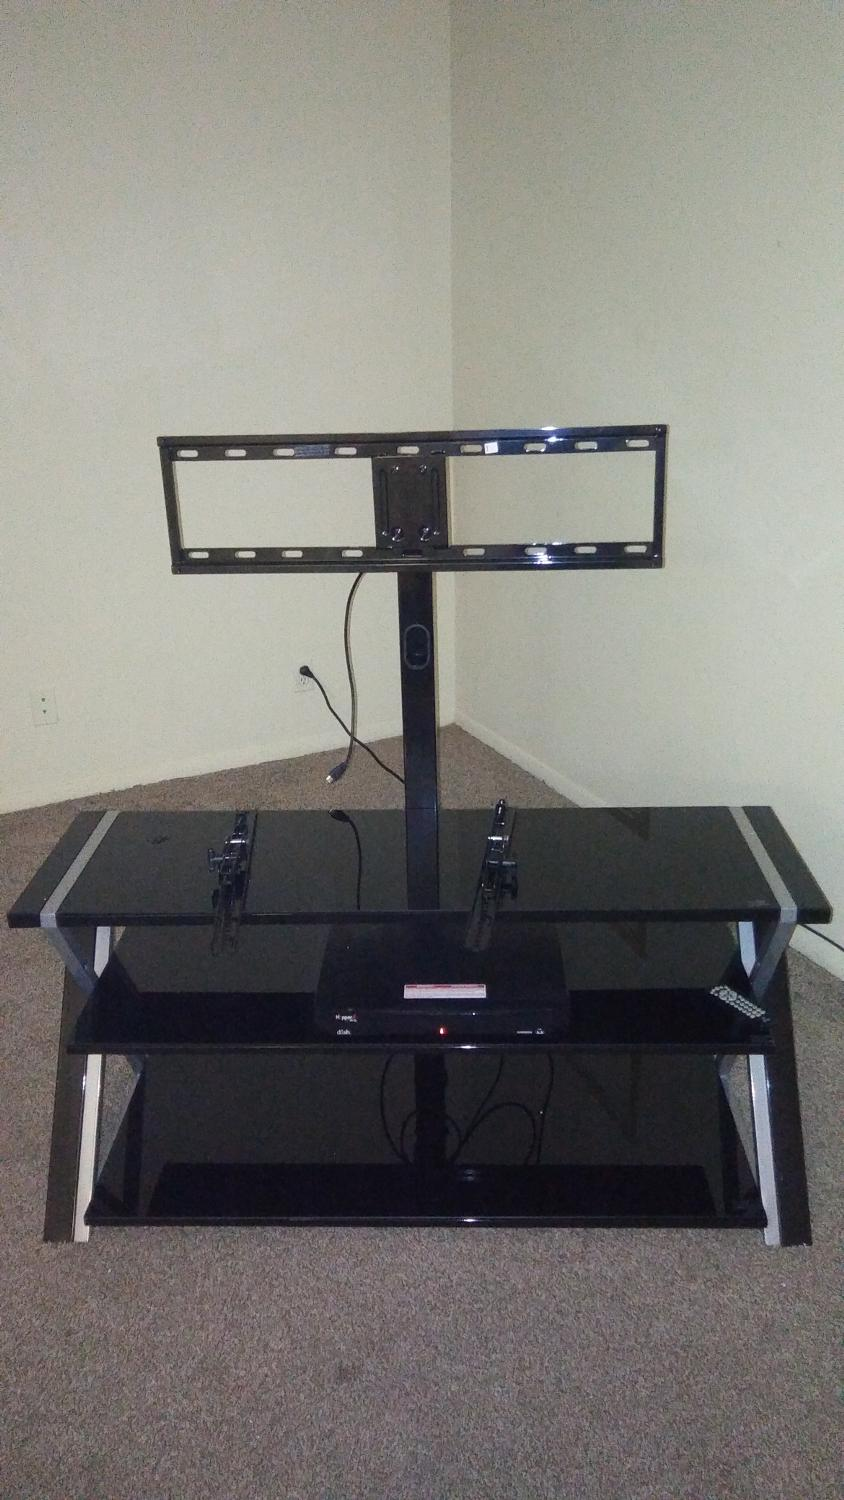 Best 3 Glass Tv Stand With Mount For Sale In Tulsa Oklahoma For 2019